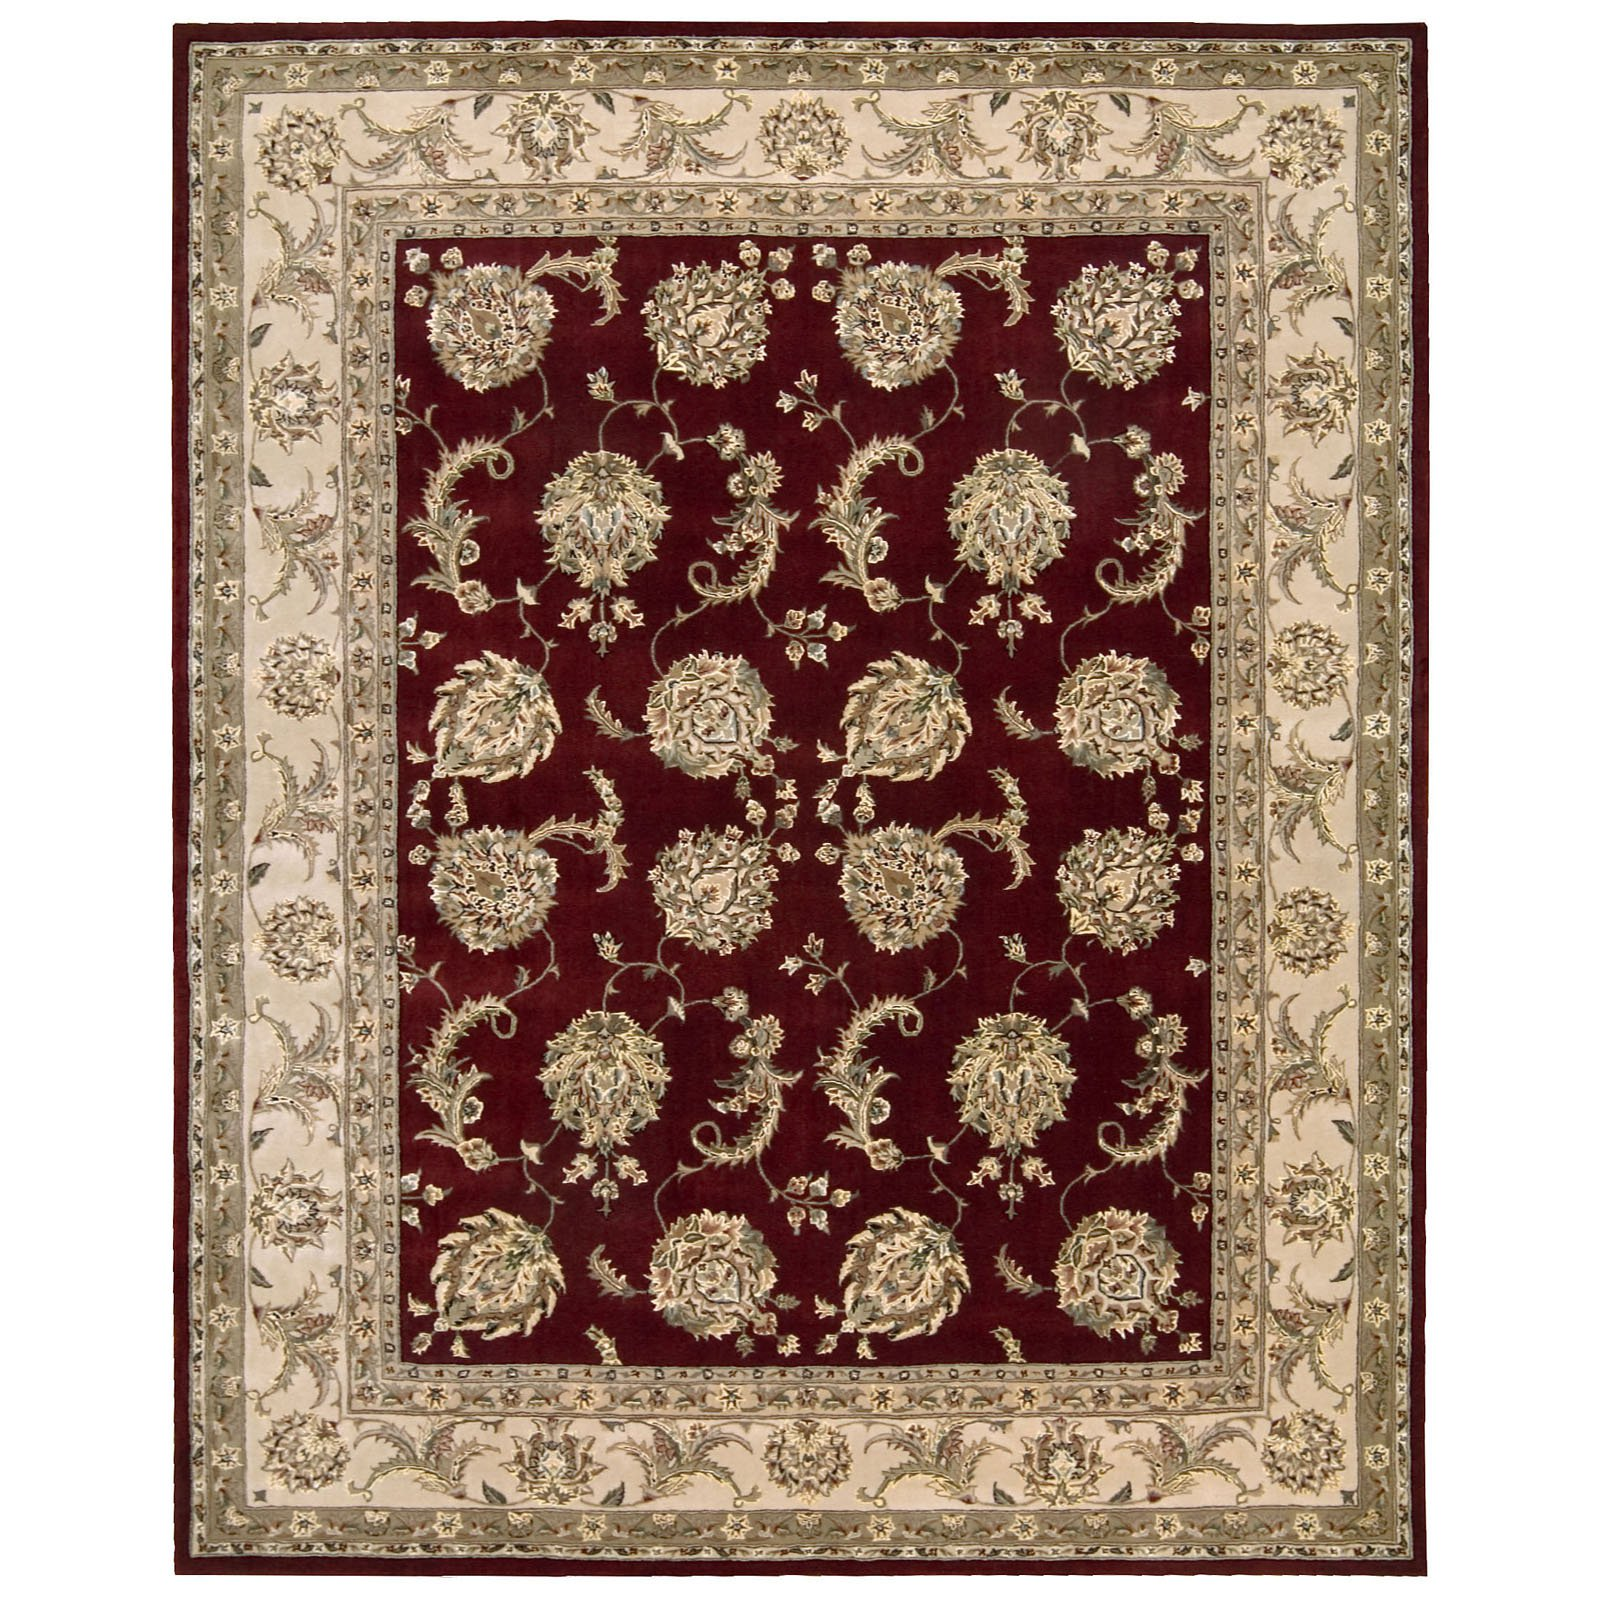 Nourison 2000 2022 Oriental Rug Red-2 x 3 ft. by Nourison Rug Corp